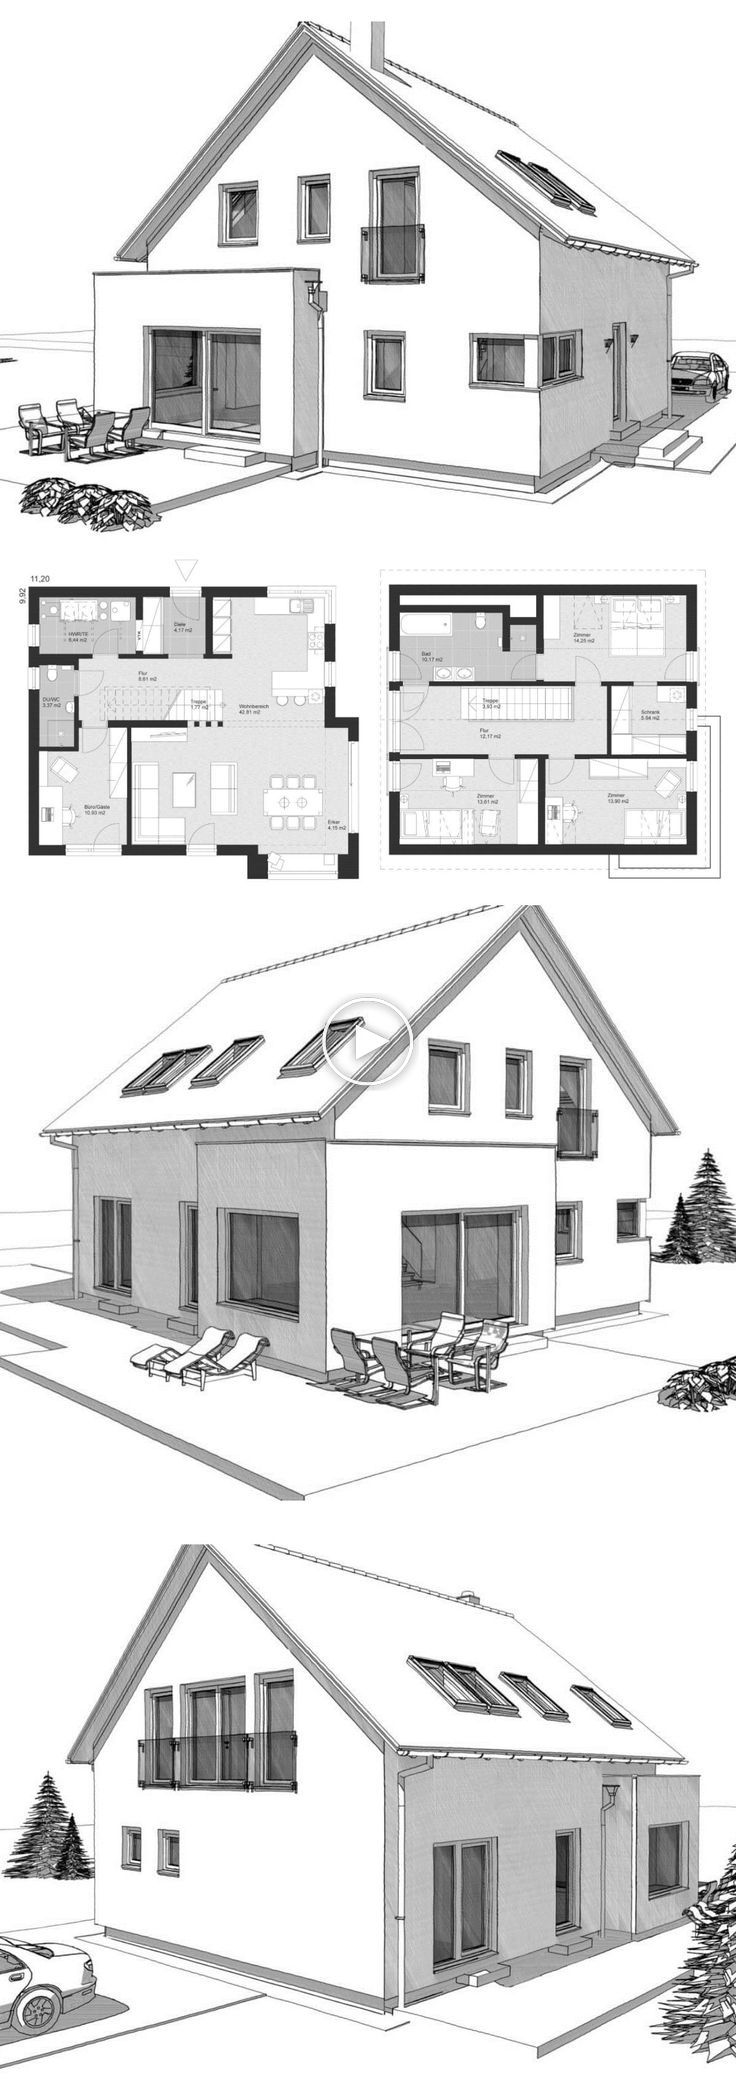 Modern detached house floor plan classic with pitched roof & bay window extension – Arch …